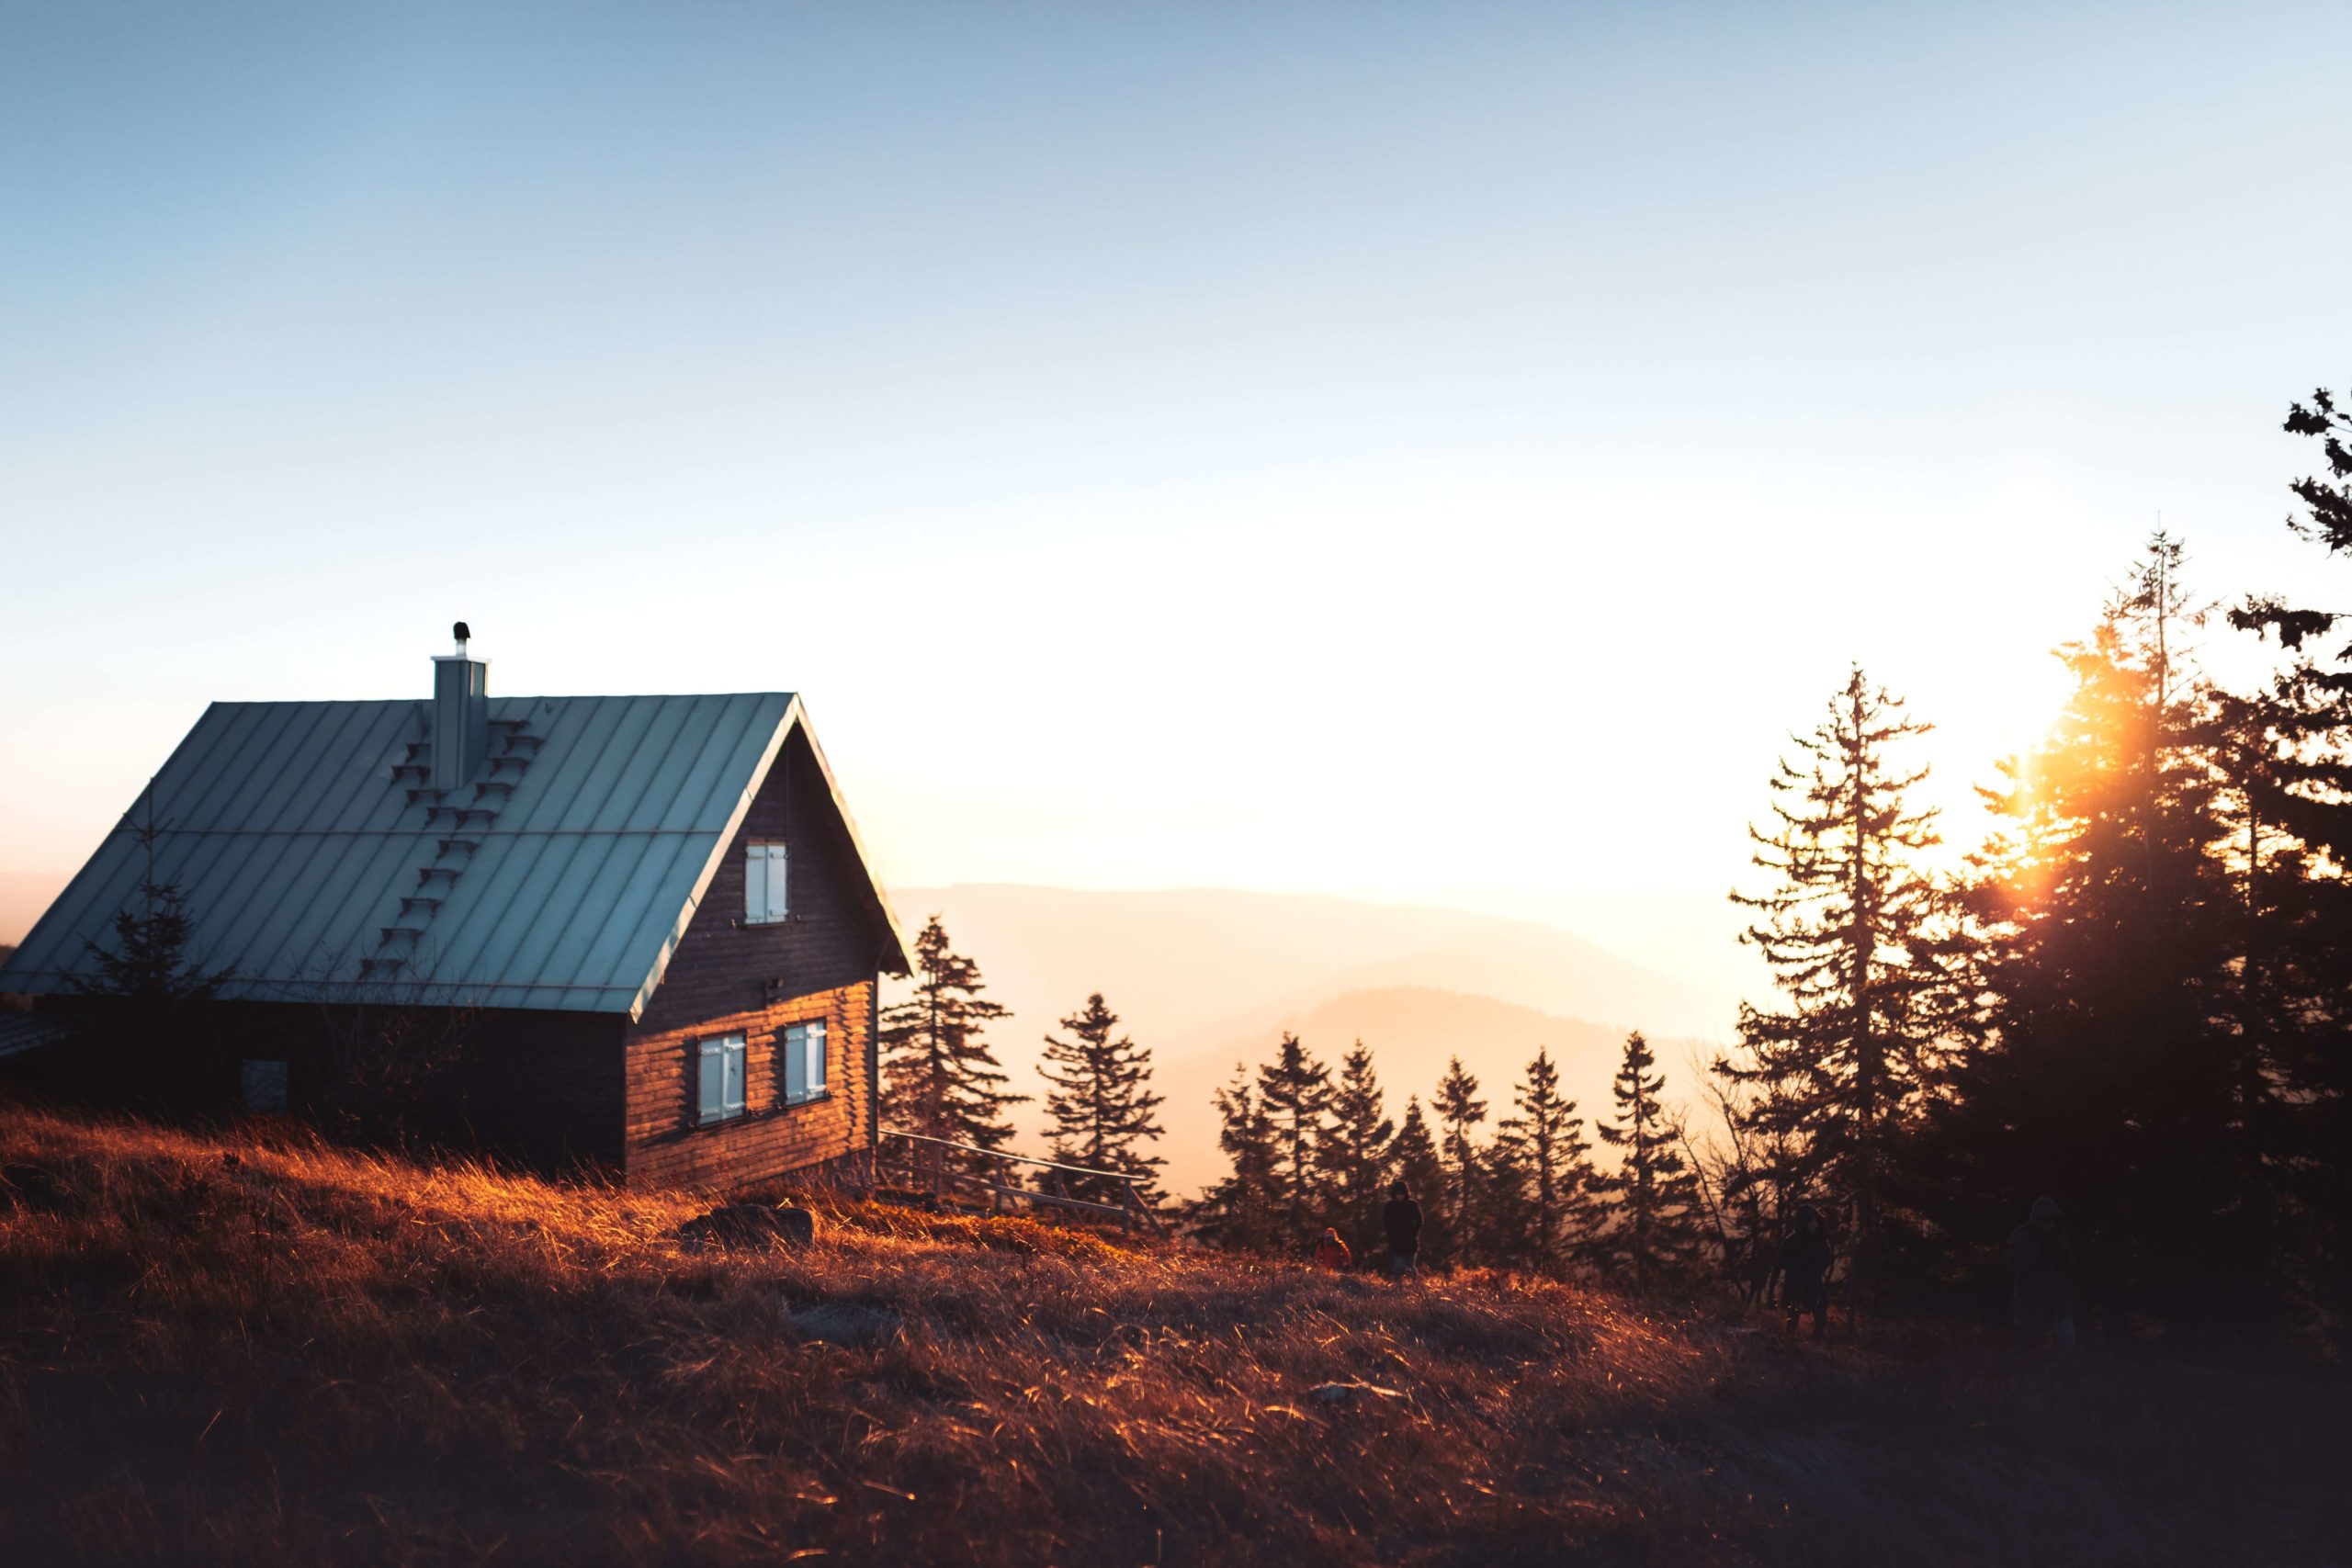 15 best campgrounds with cabins